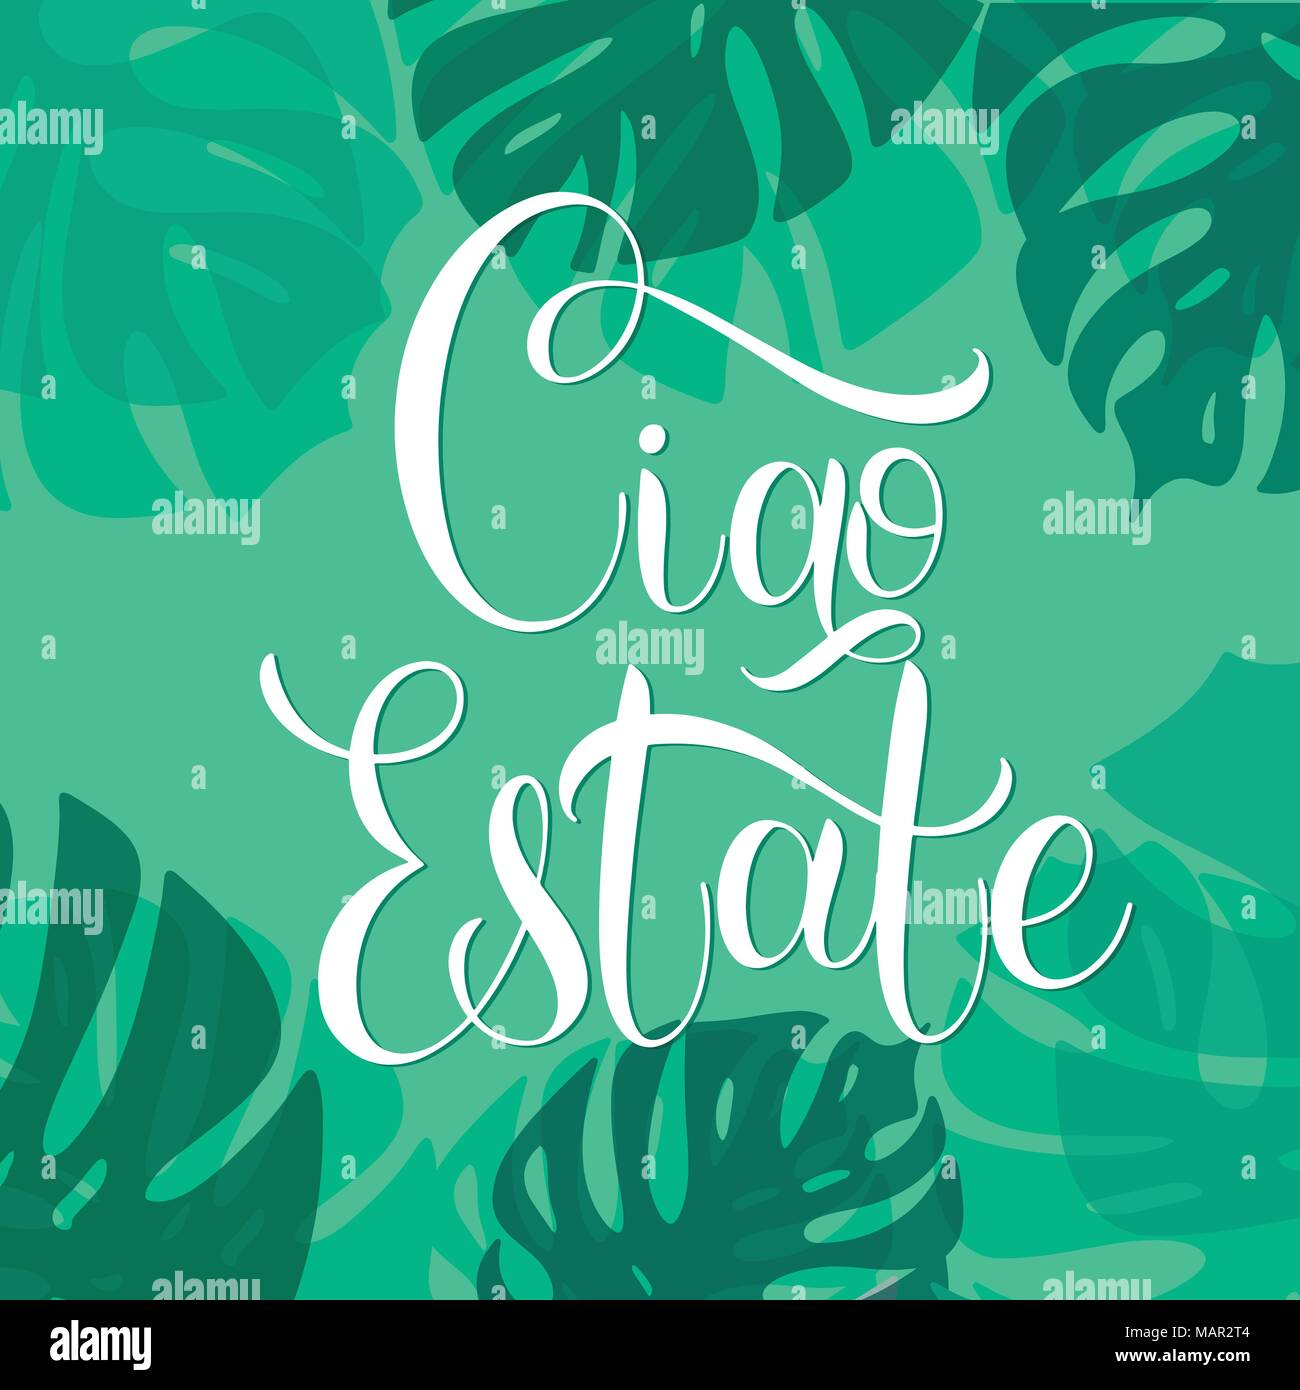 Ciao estate hello summer lettering on italian elements for hello summer lettering on italian elements for invitations posters greeting cards seasons greetings m4hsunfo